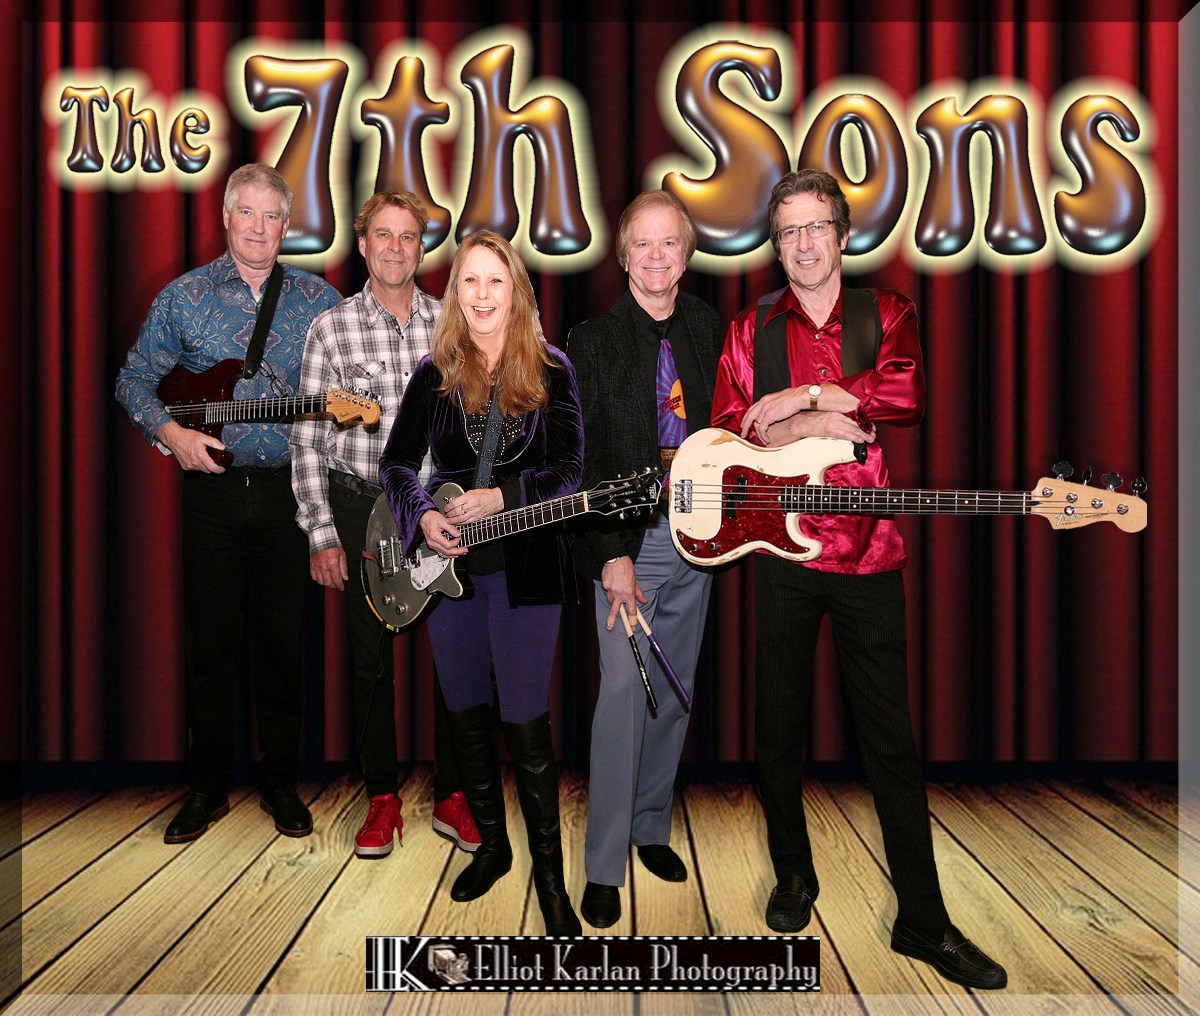 The 7th Sons